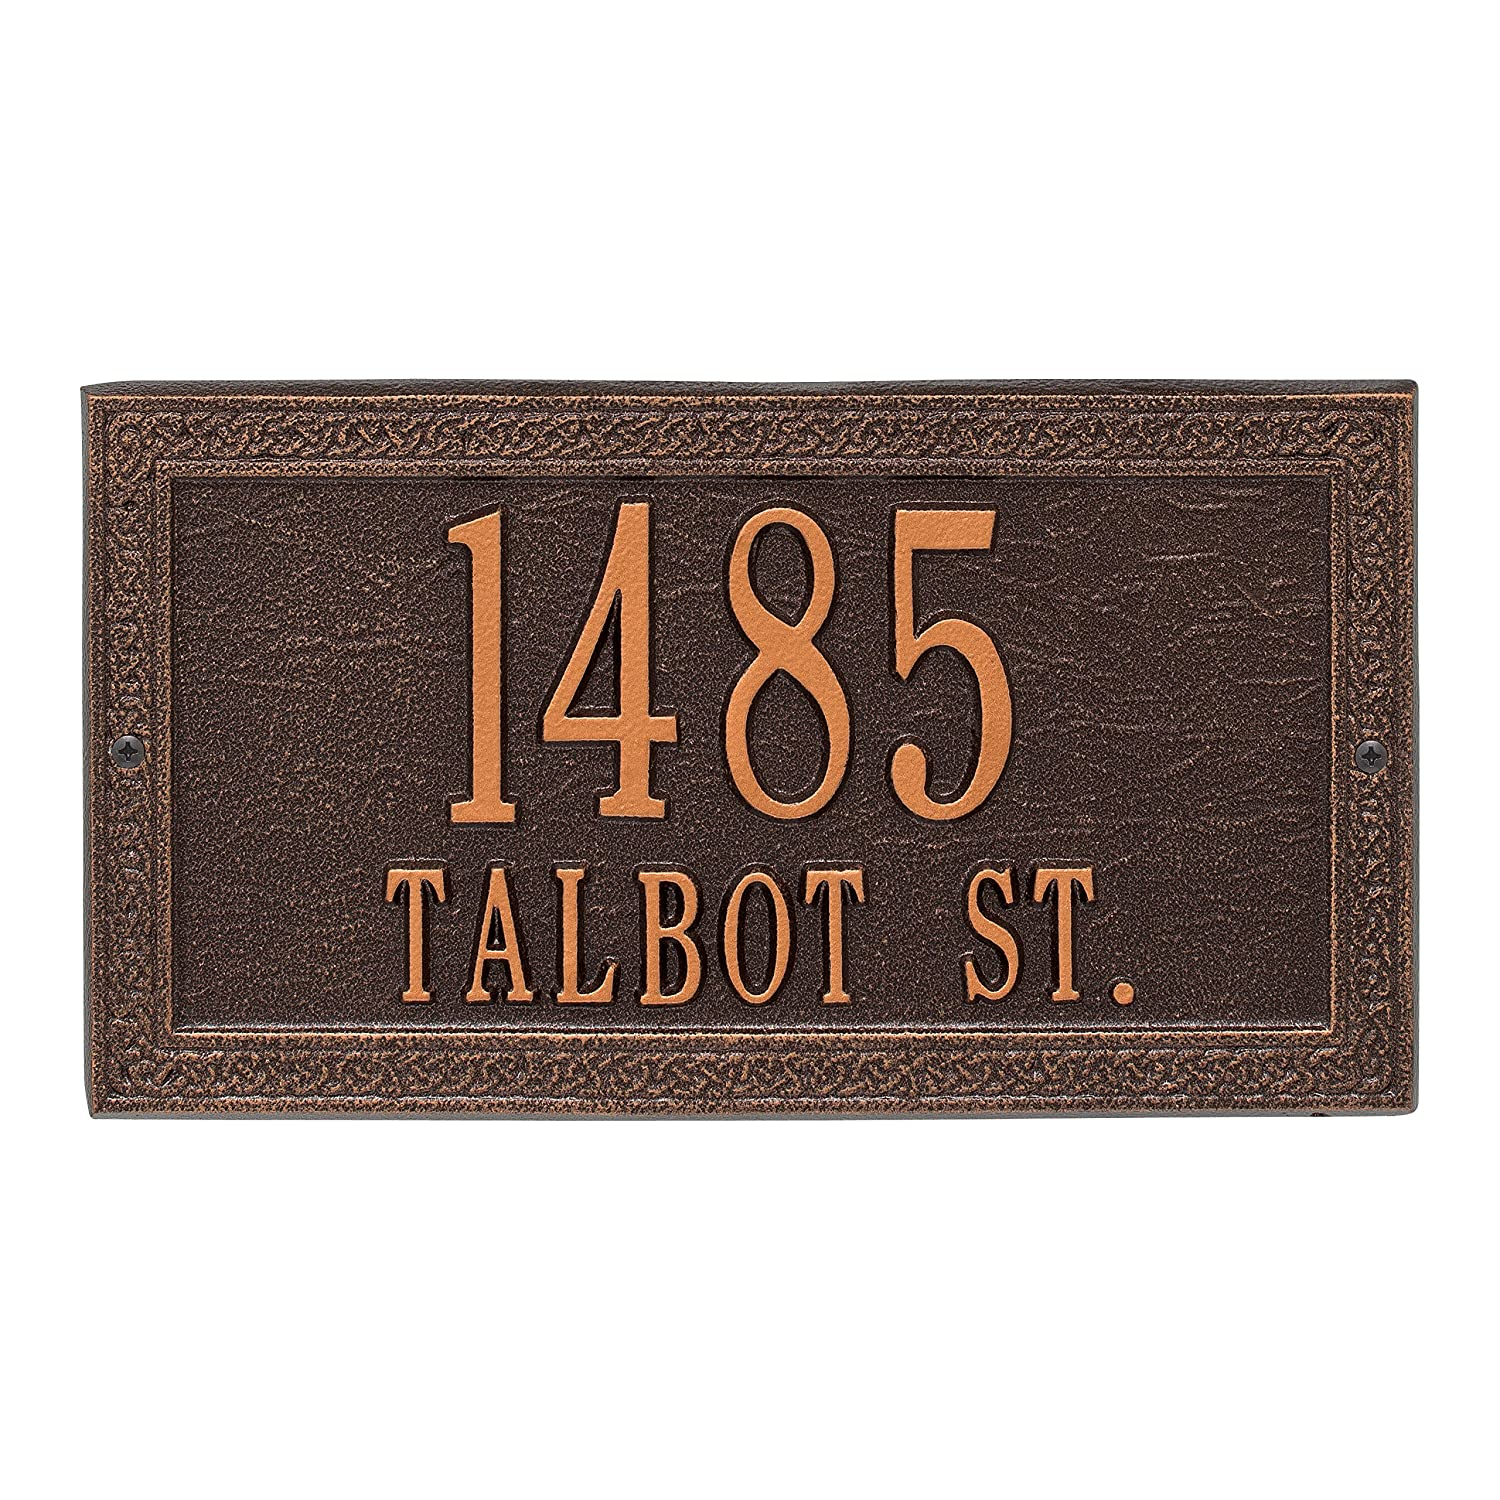 Whitehall Personalized Indoor/Outdoor Cast Irish Celtic Cornerstone Address Plaque Sign with House Number and Street Name (Antique Copper) Whitehall Products